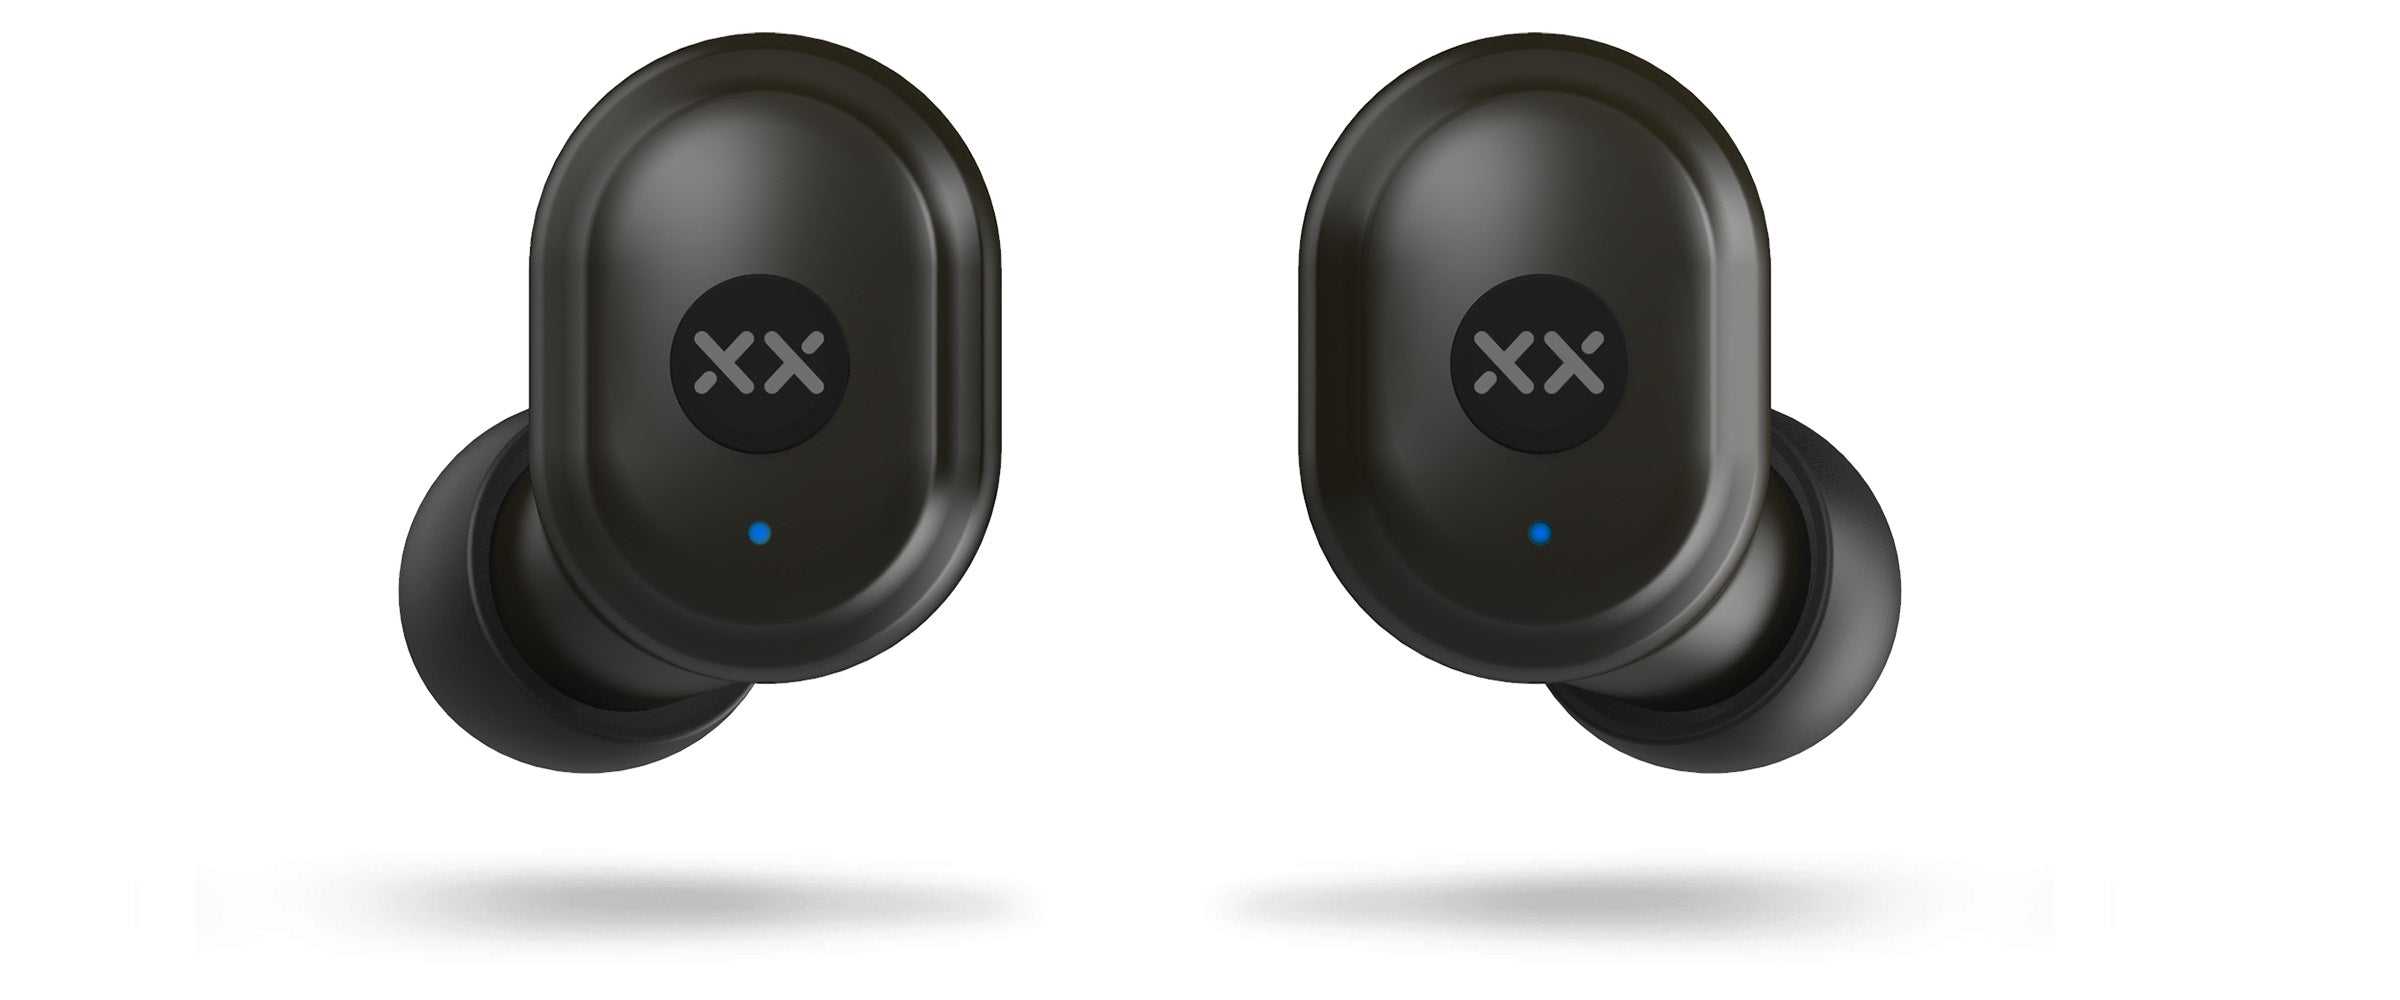 Streambuds LX true wireless earbuds